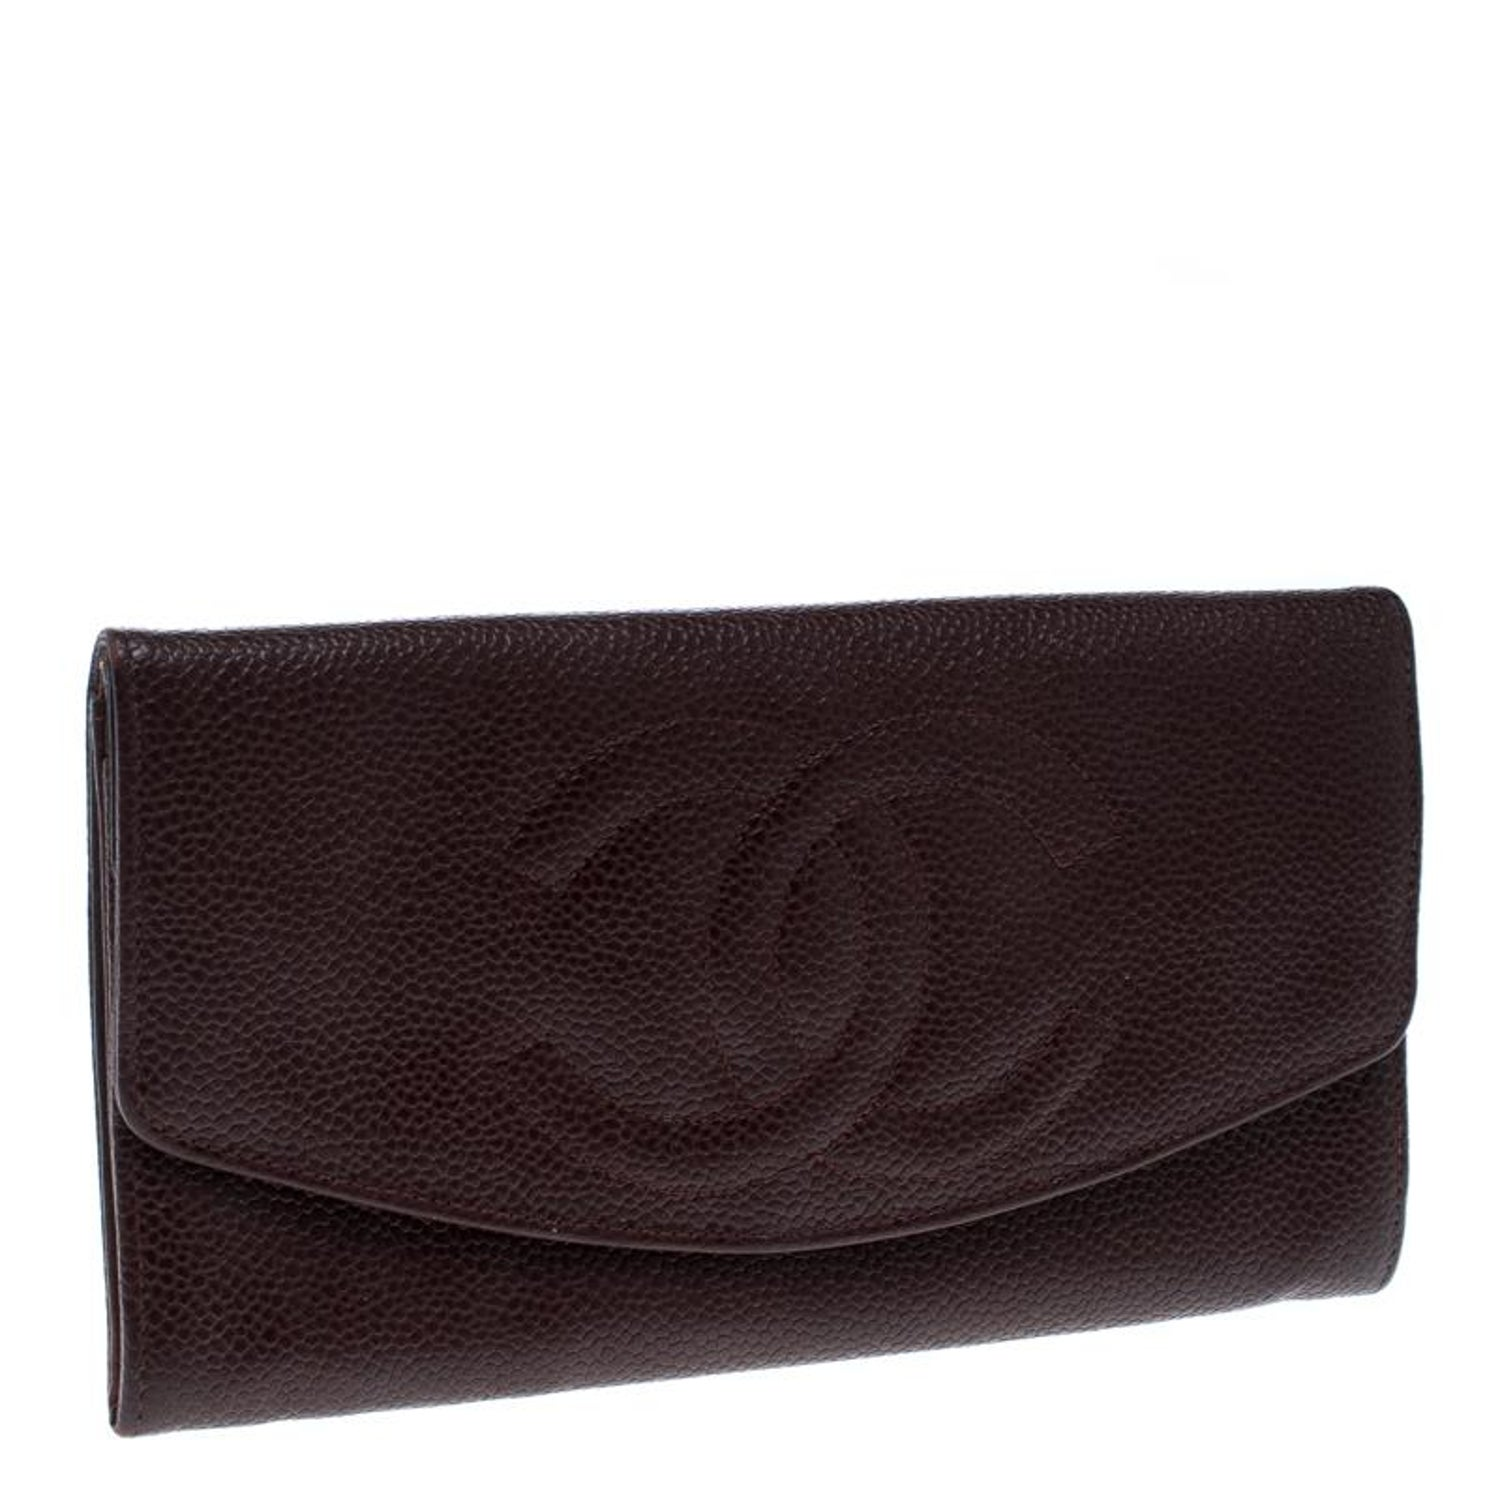 f5a2f95eaf59 Chanel Maroon Leather CC Timeless Vintage Wallet For Sale at 1stdibs